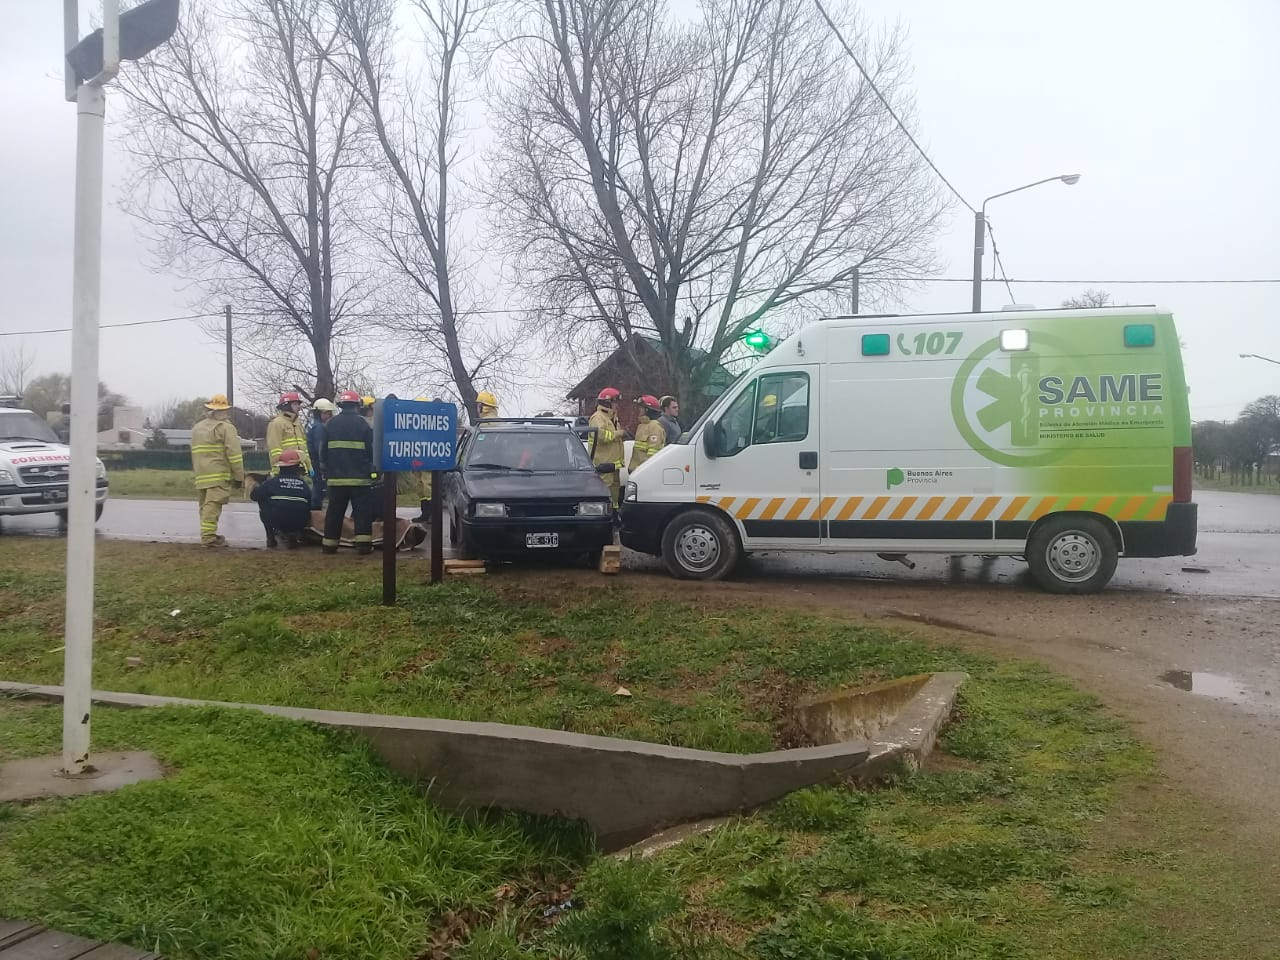 Saldungaray – Accidente vehicular en la Avenida Corrales